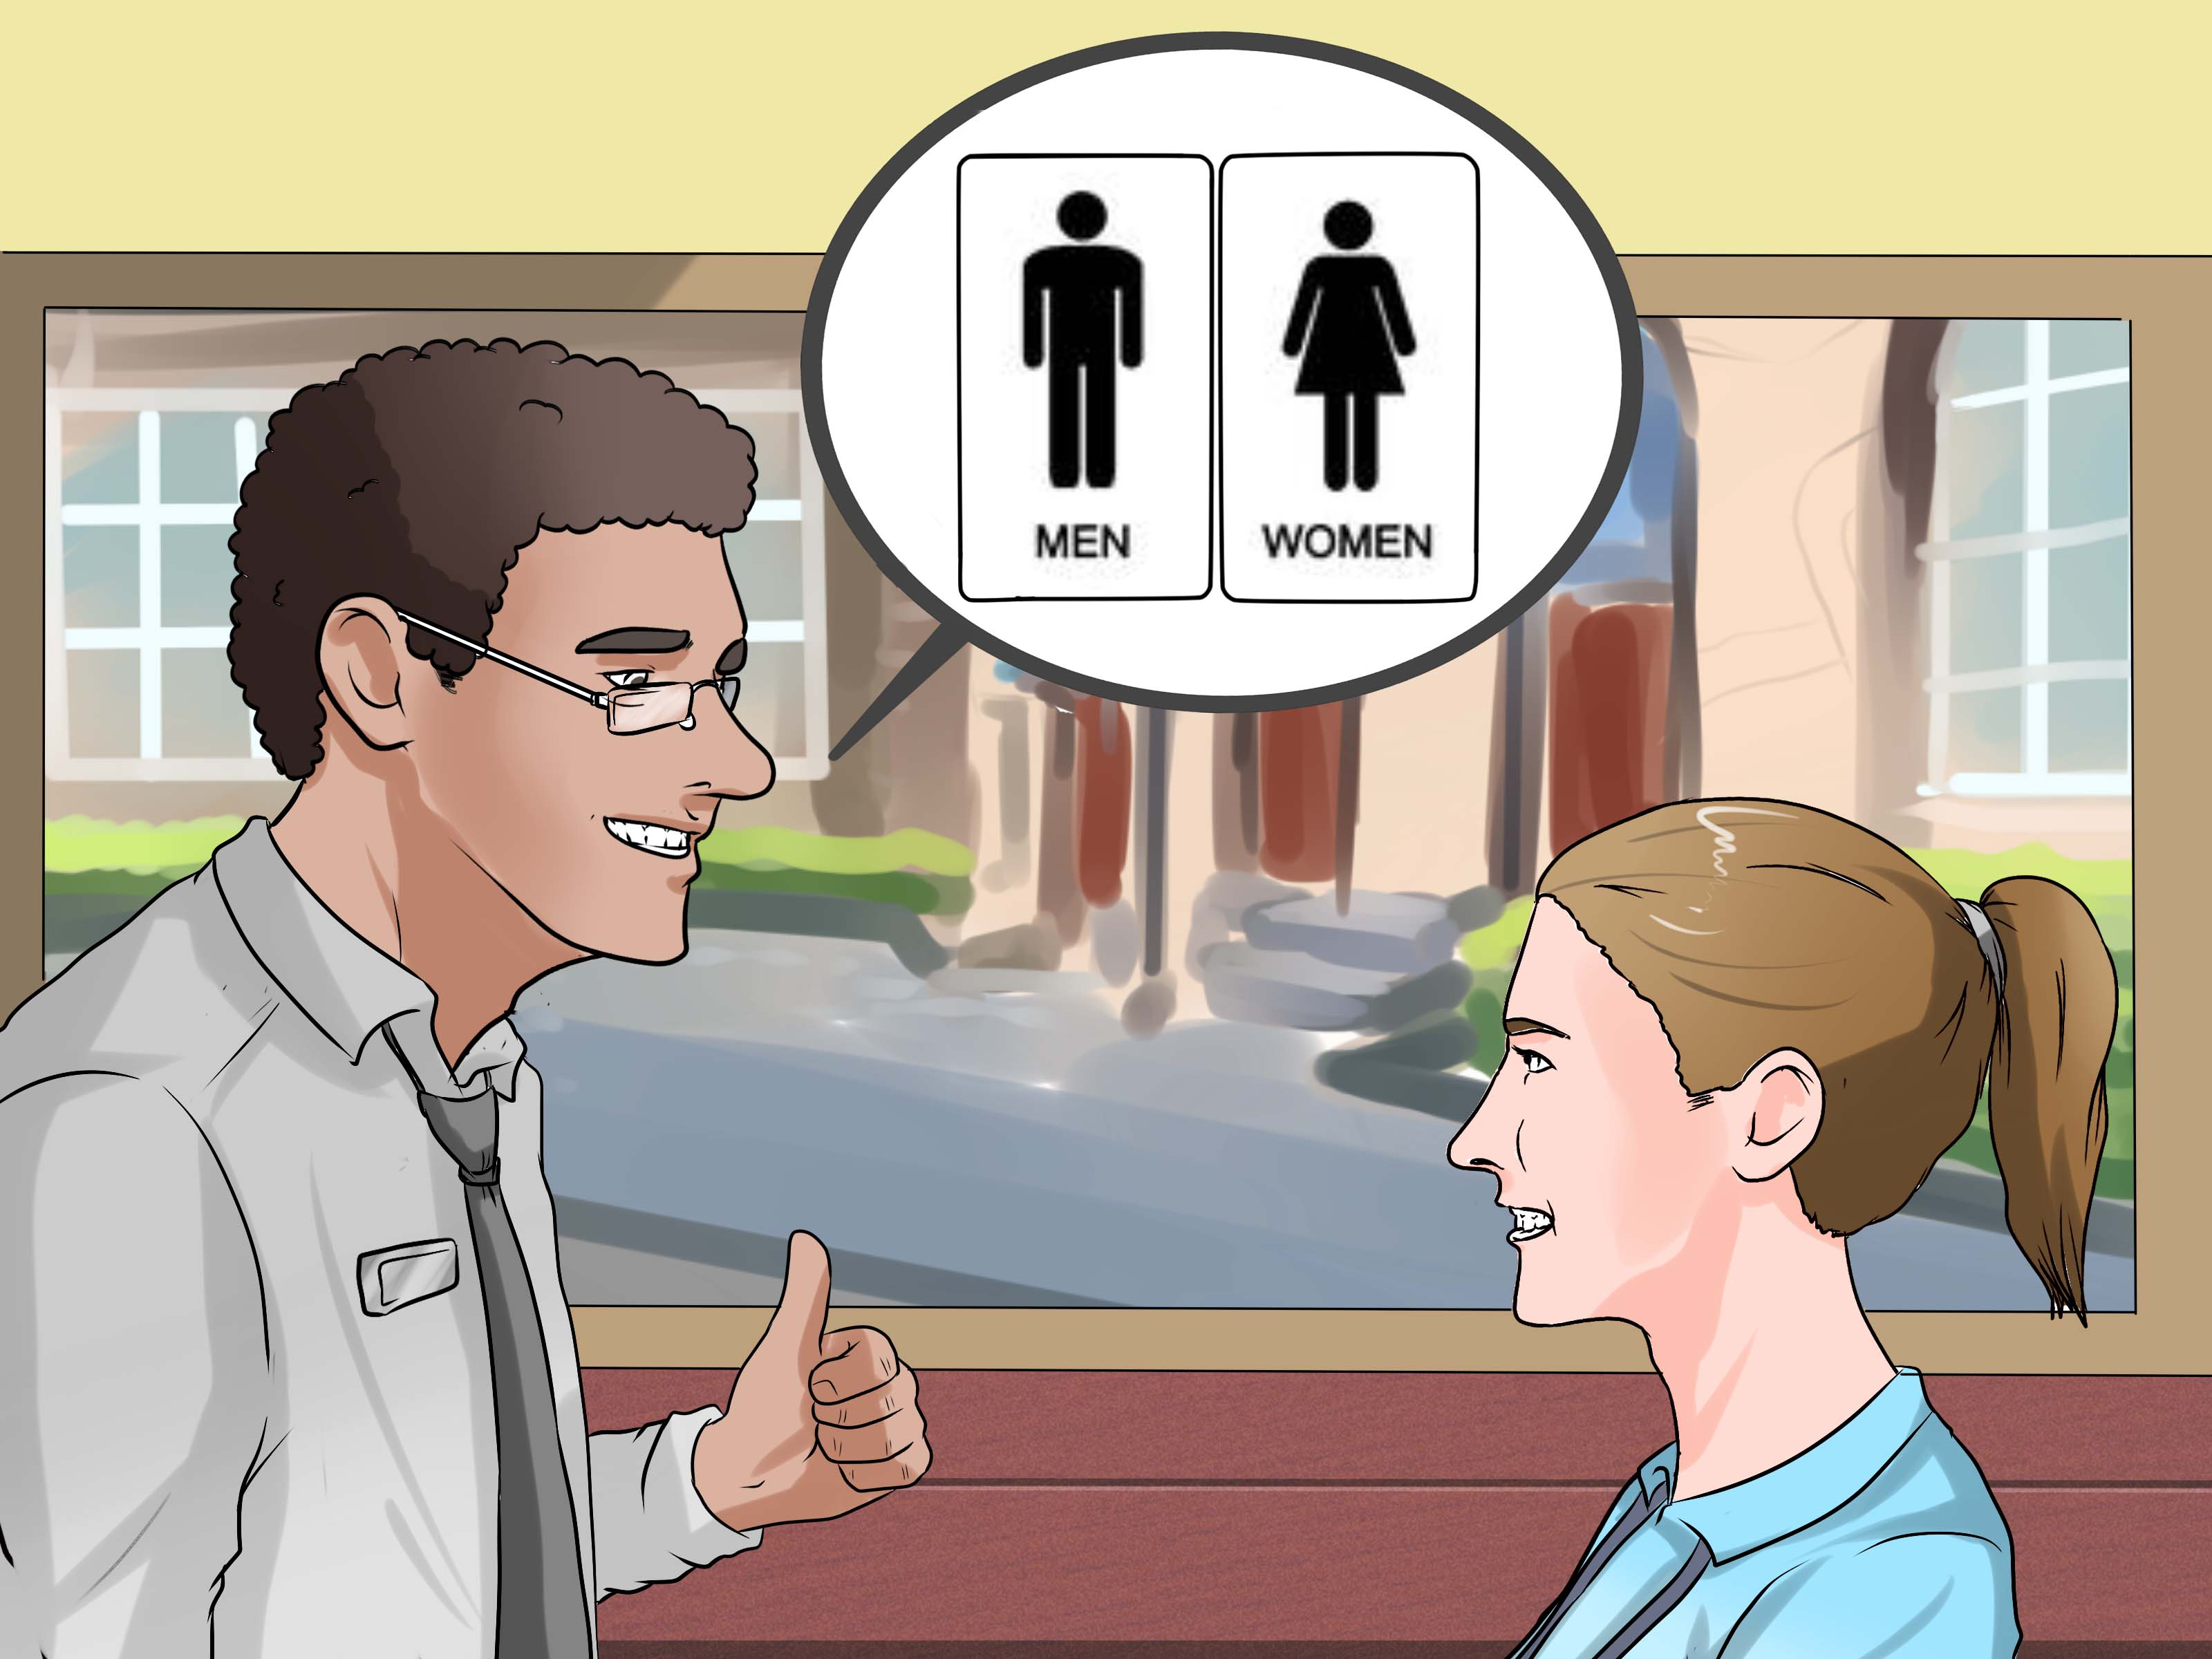 3 Ways To Get Permission To Use The Bathroom In School